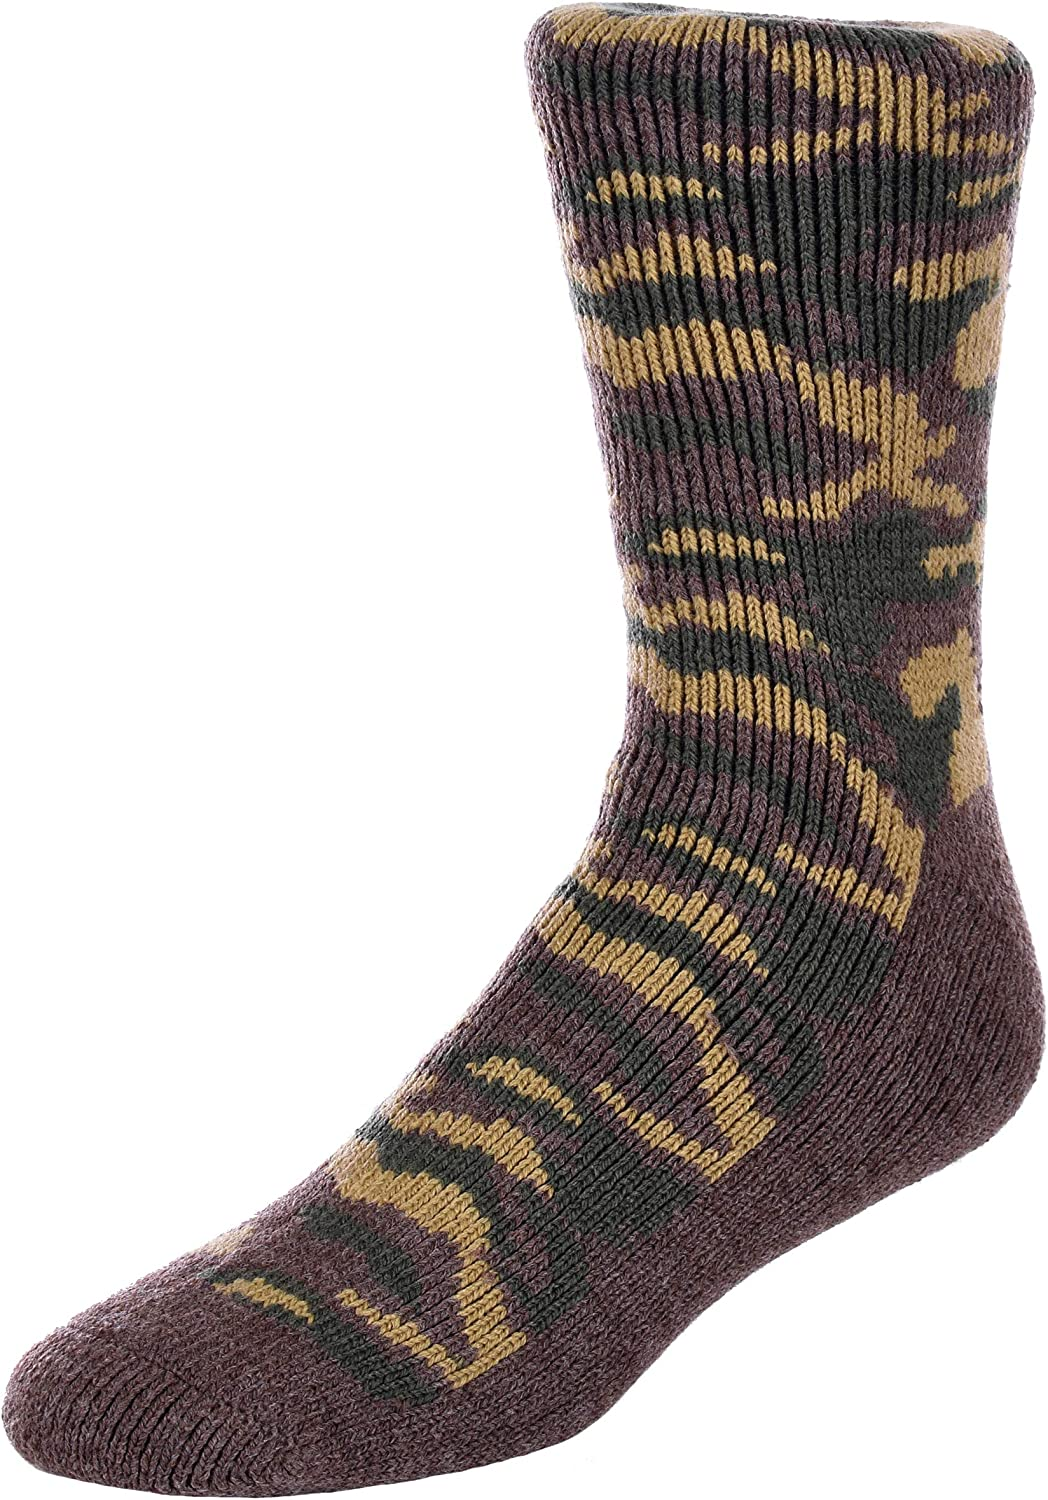 47580d86b8b28 Men's Polar Extreme Insulated Thermal Camouflage Pattern Pattern Pattern  Socks in 3 Great colors d67b17